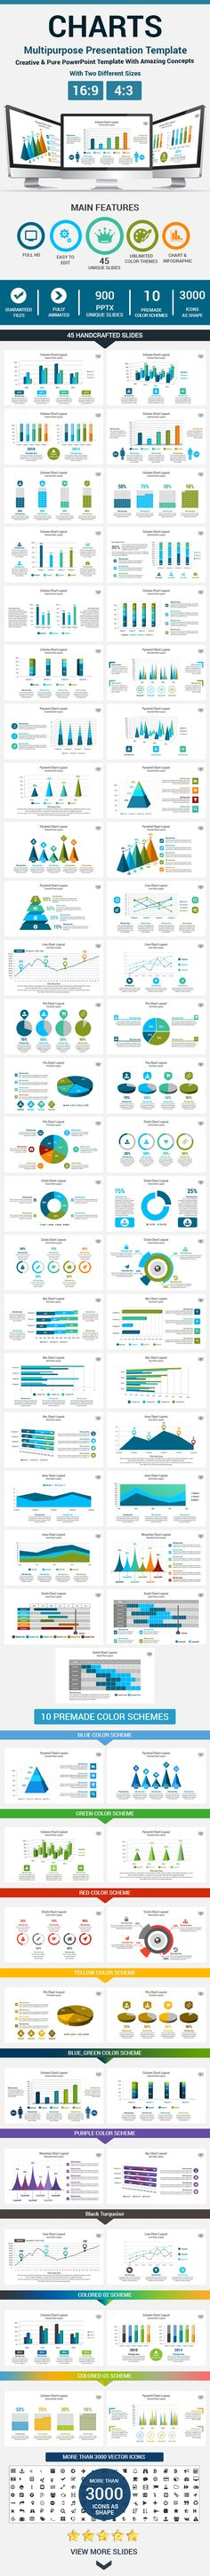 Charts PowerPoint Presentation Template #design Download: http://graphicriver.net/item/charts-powerpoint-presentation-template/11417928?ref=ksioks